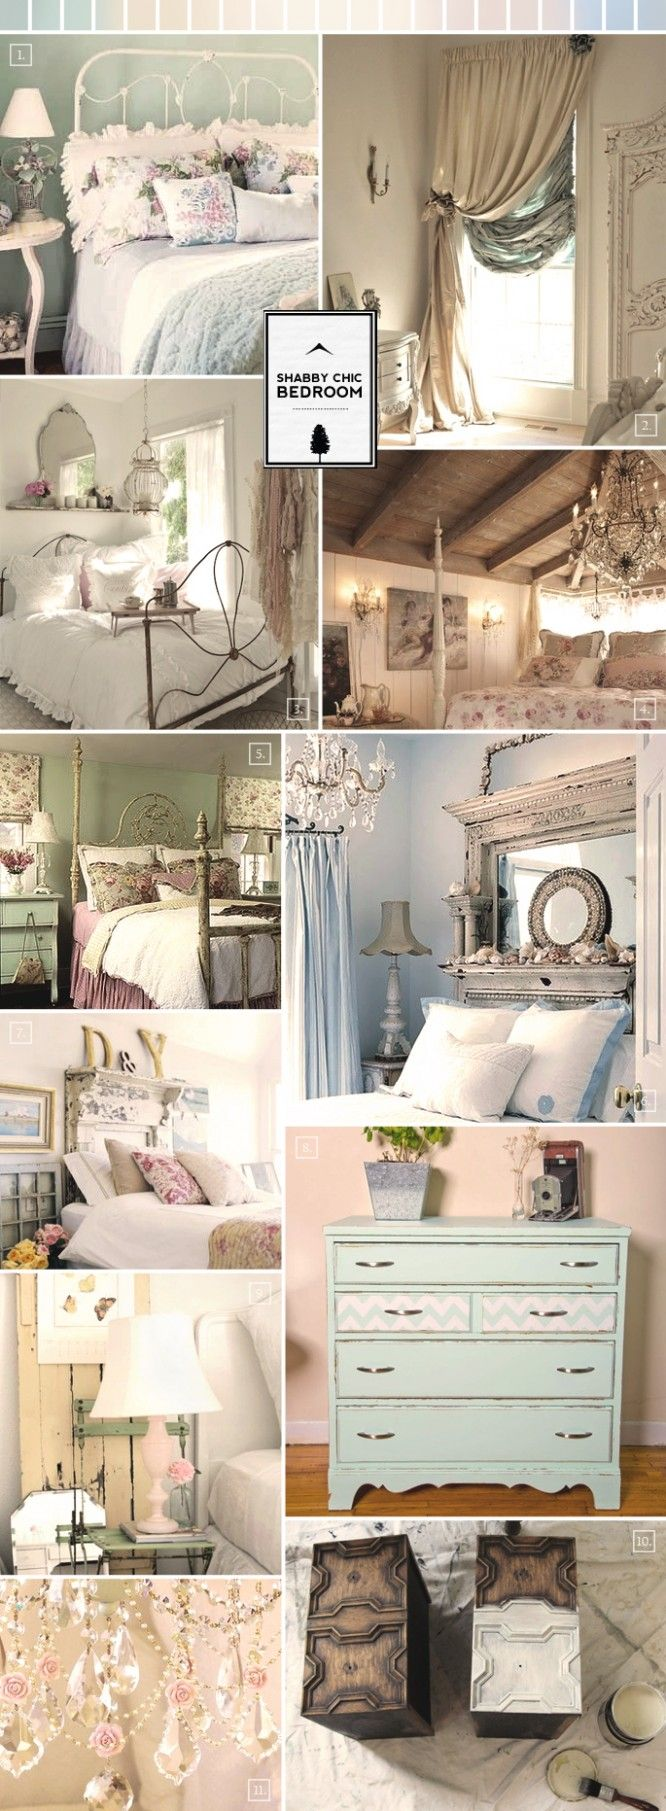 Amazing Shabby Chic Bedroom Ideas And Decor Inspiration